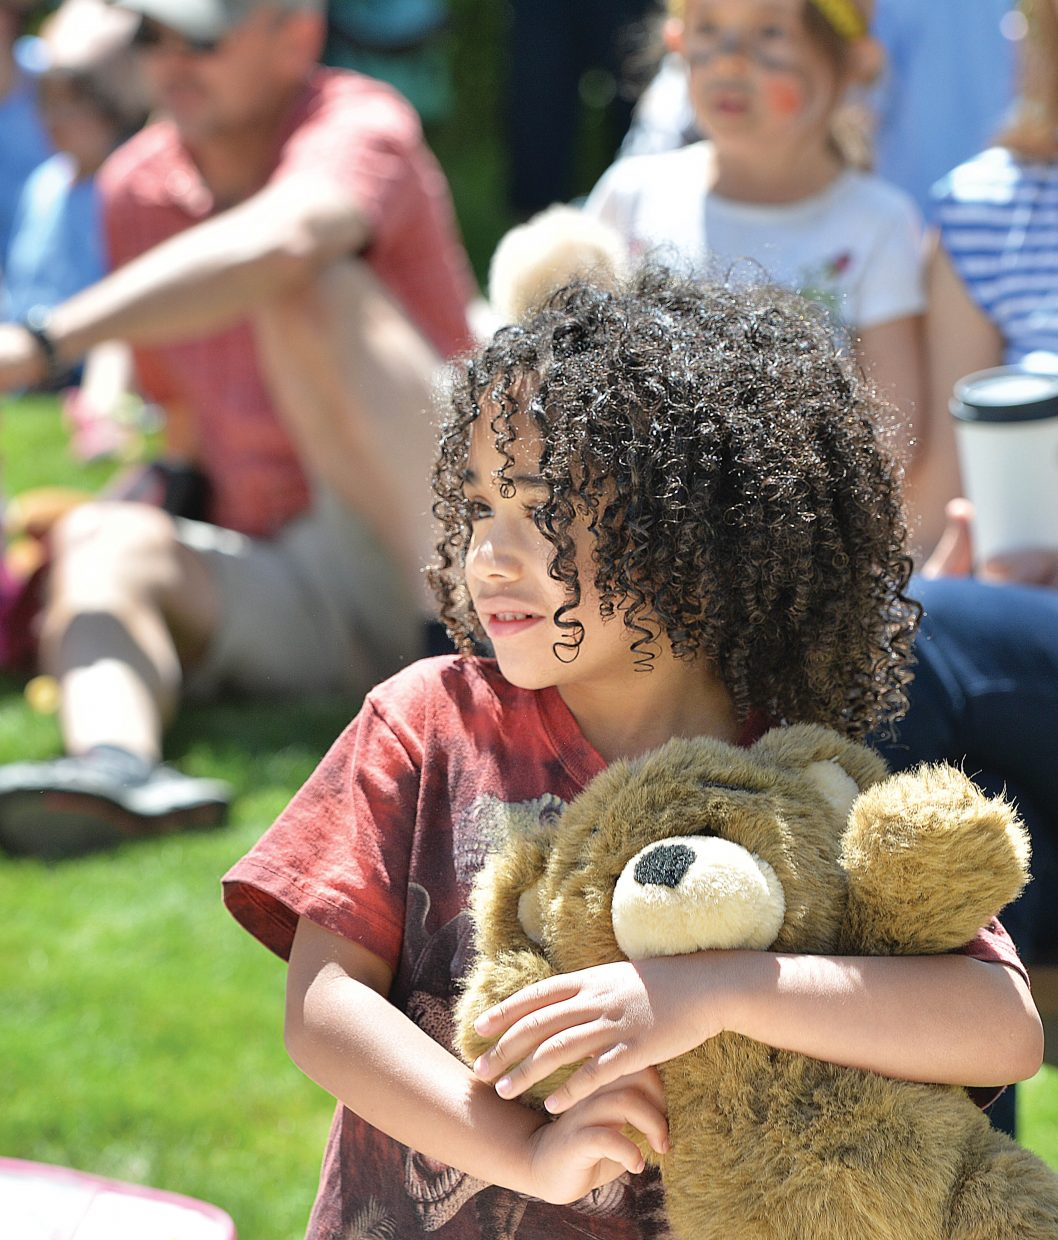 Three-year-old Enzo Ciraldo-Thomas hugs his teddy bear during the annual Teddy Bear Picnic at the Bud Werner Memorial Library Thursday morning. The event included entertainment from the Yampa Valley Boys and We're Not Clowns as well as face painting.